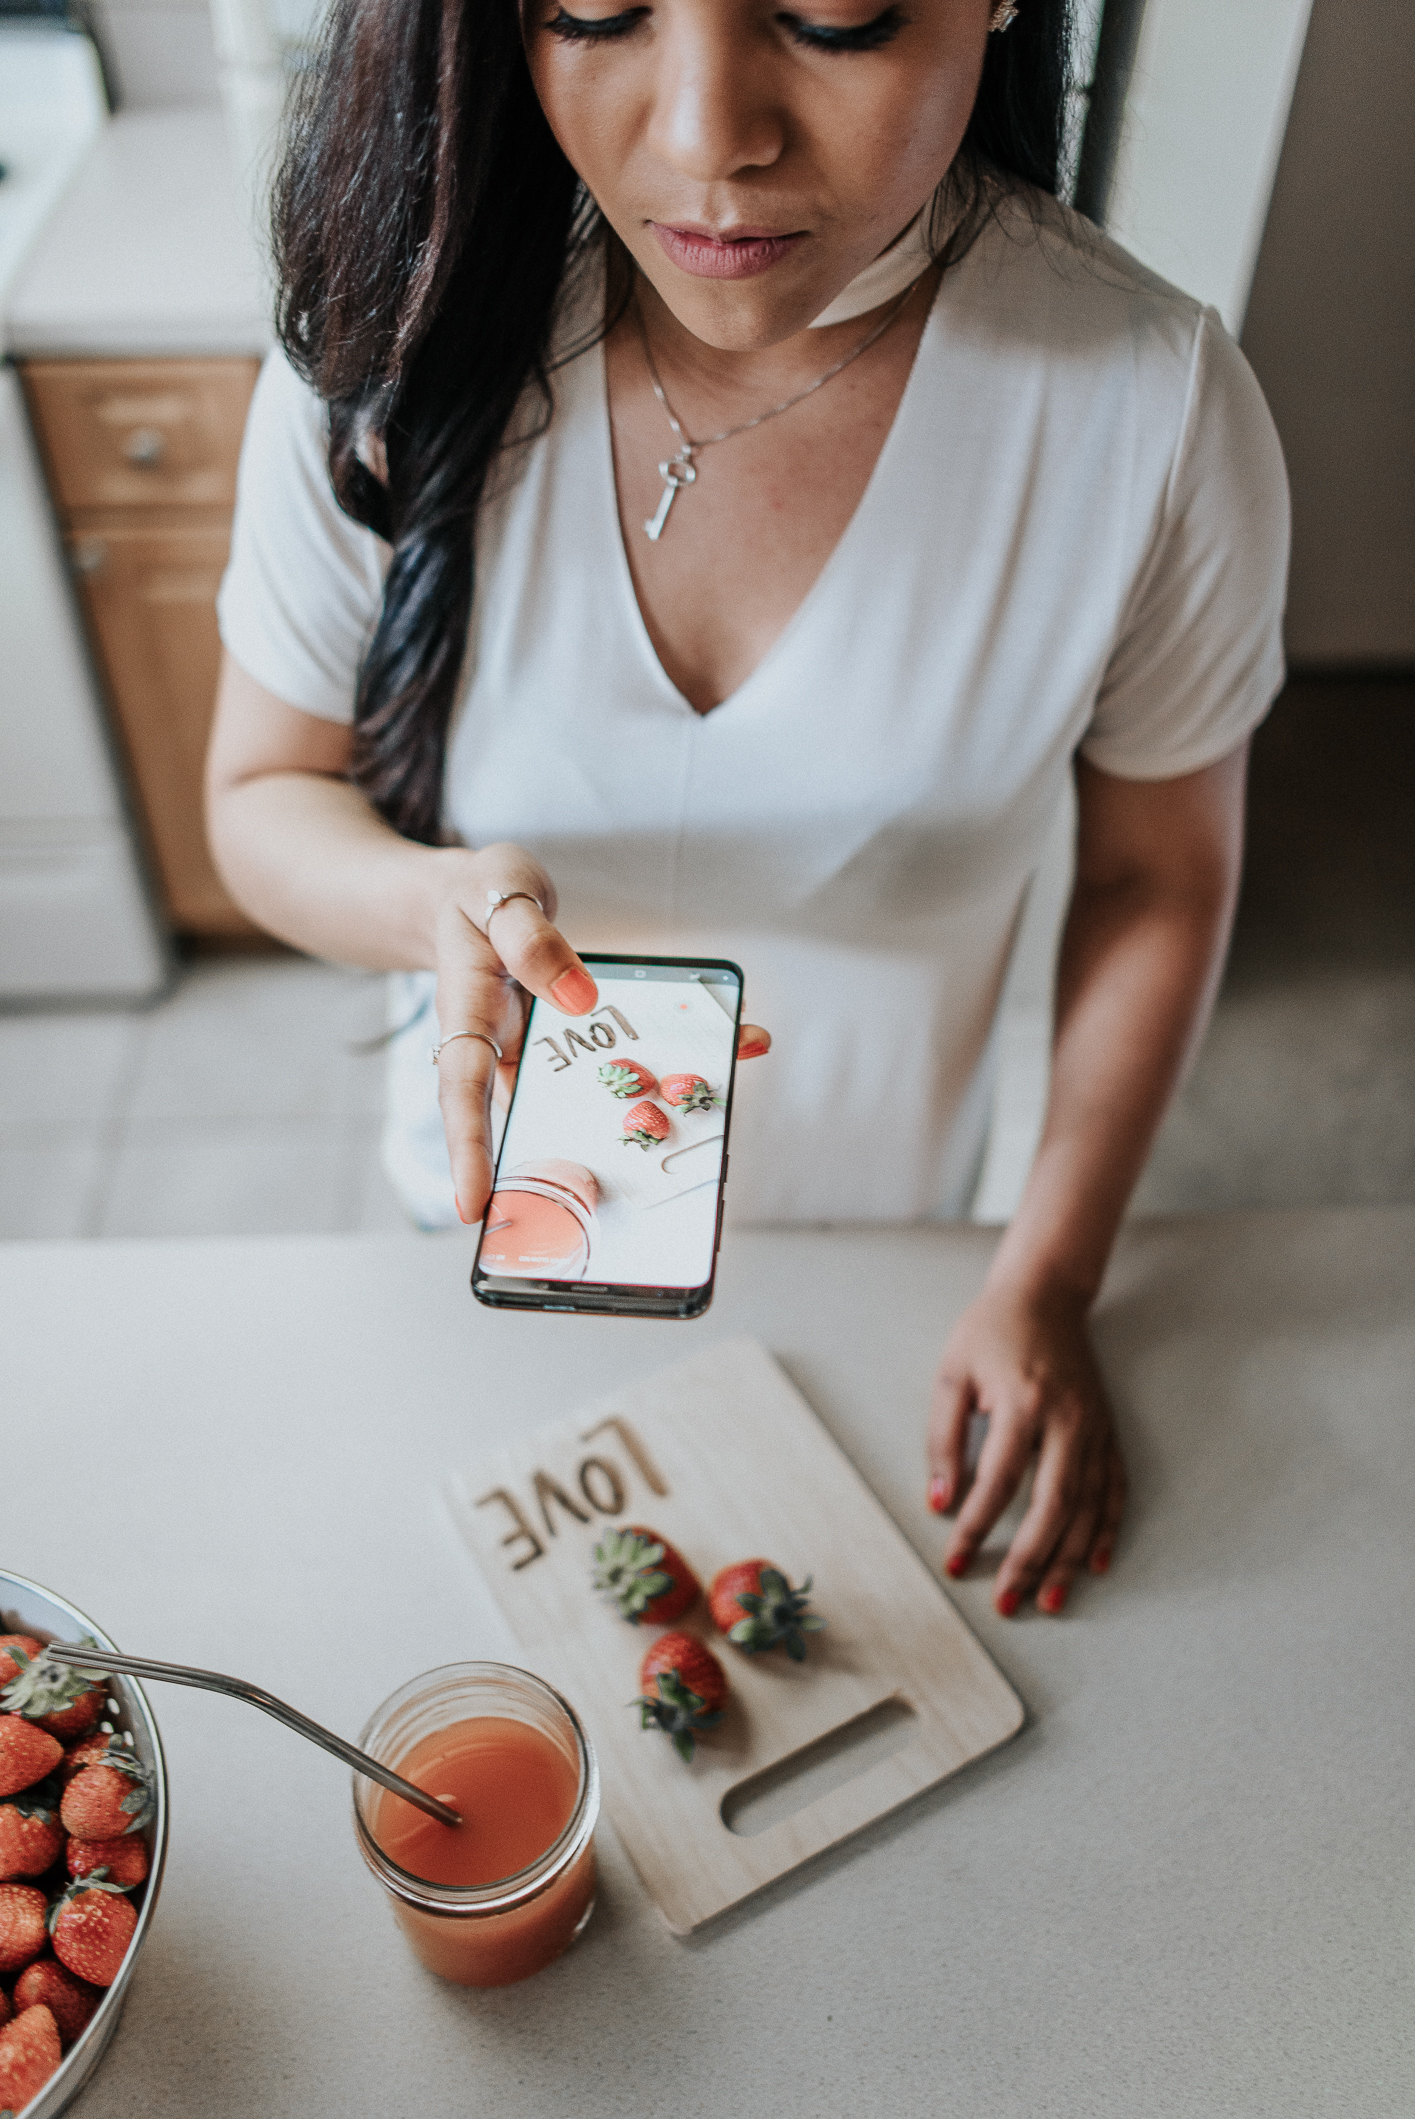 Making beautiful pictures and videos is a MUST for me. Beautiful pictures motivate you to try my recipes and follow my healthy tips. Come behind the scenes as I share my secret to create amazing content!